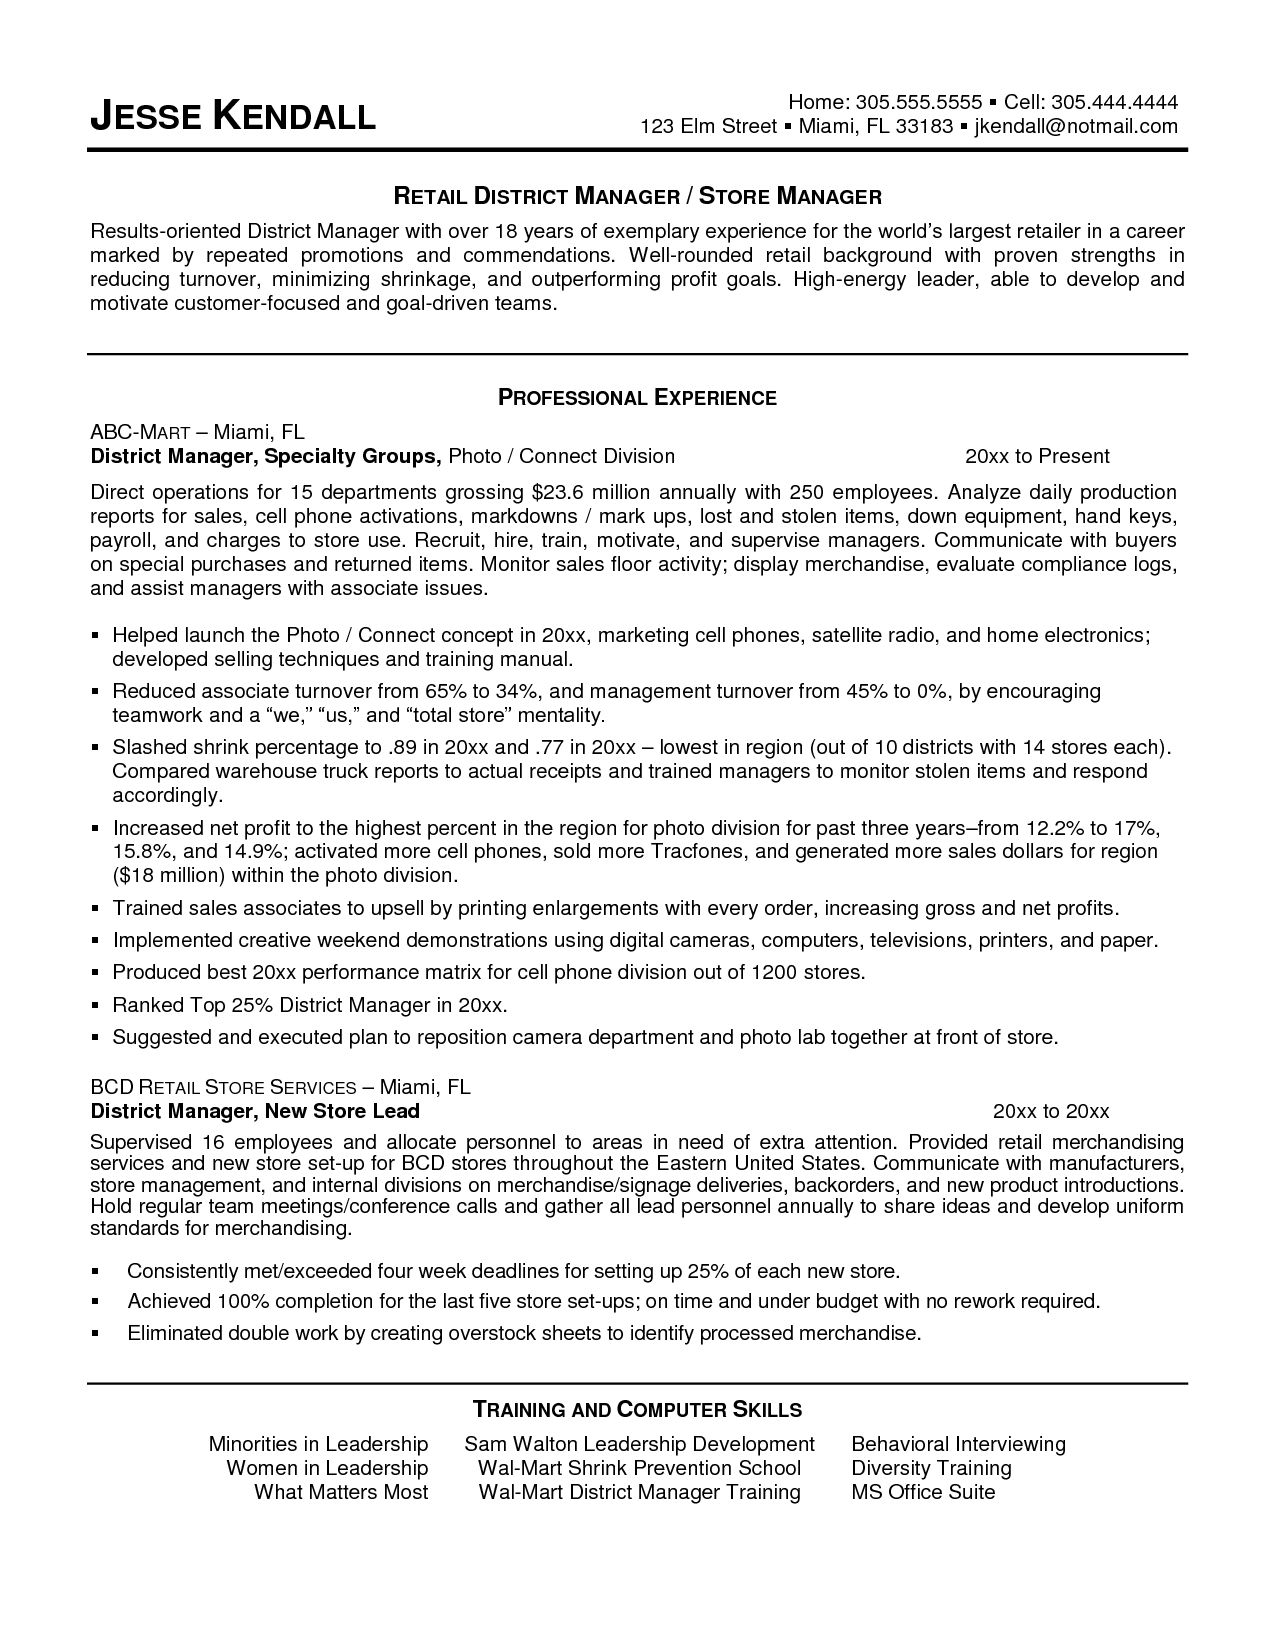 District Manager Resume Sample For Retail Store Examples Letter Amp